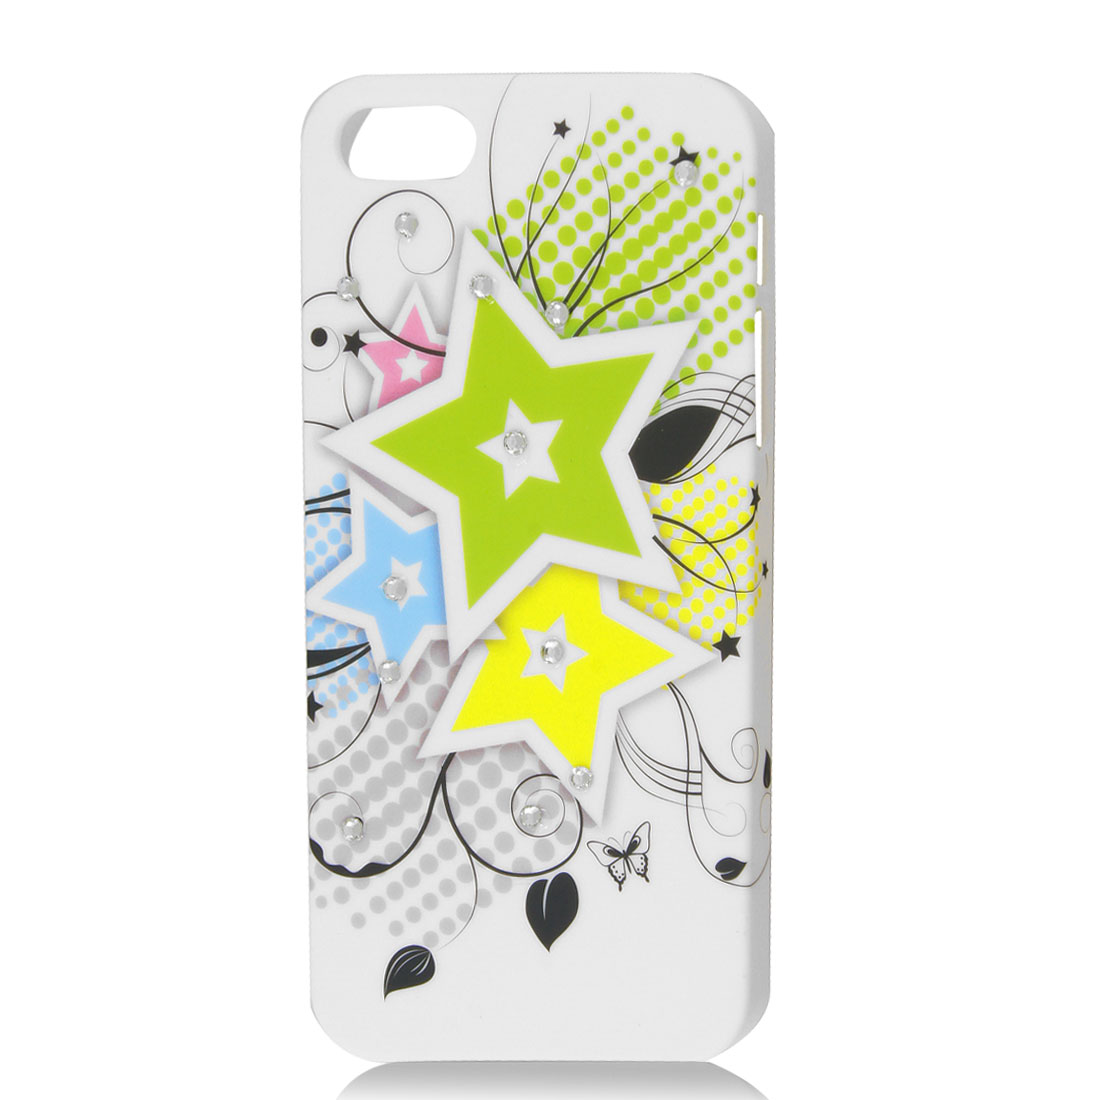 White Rhinestone Dot Star Design Hard Shell Back Case Cover Skin for iPhone 5 5G